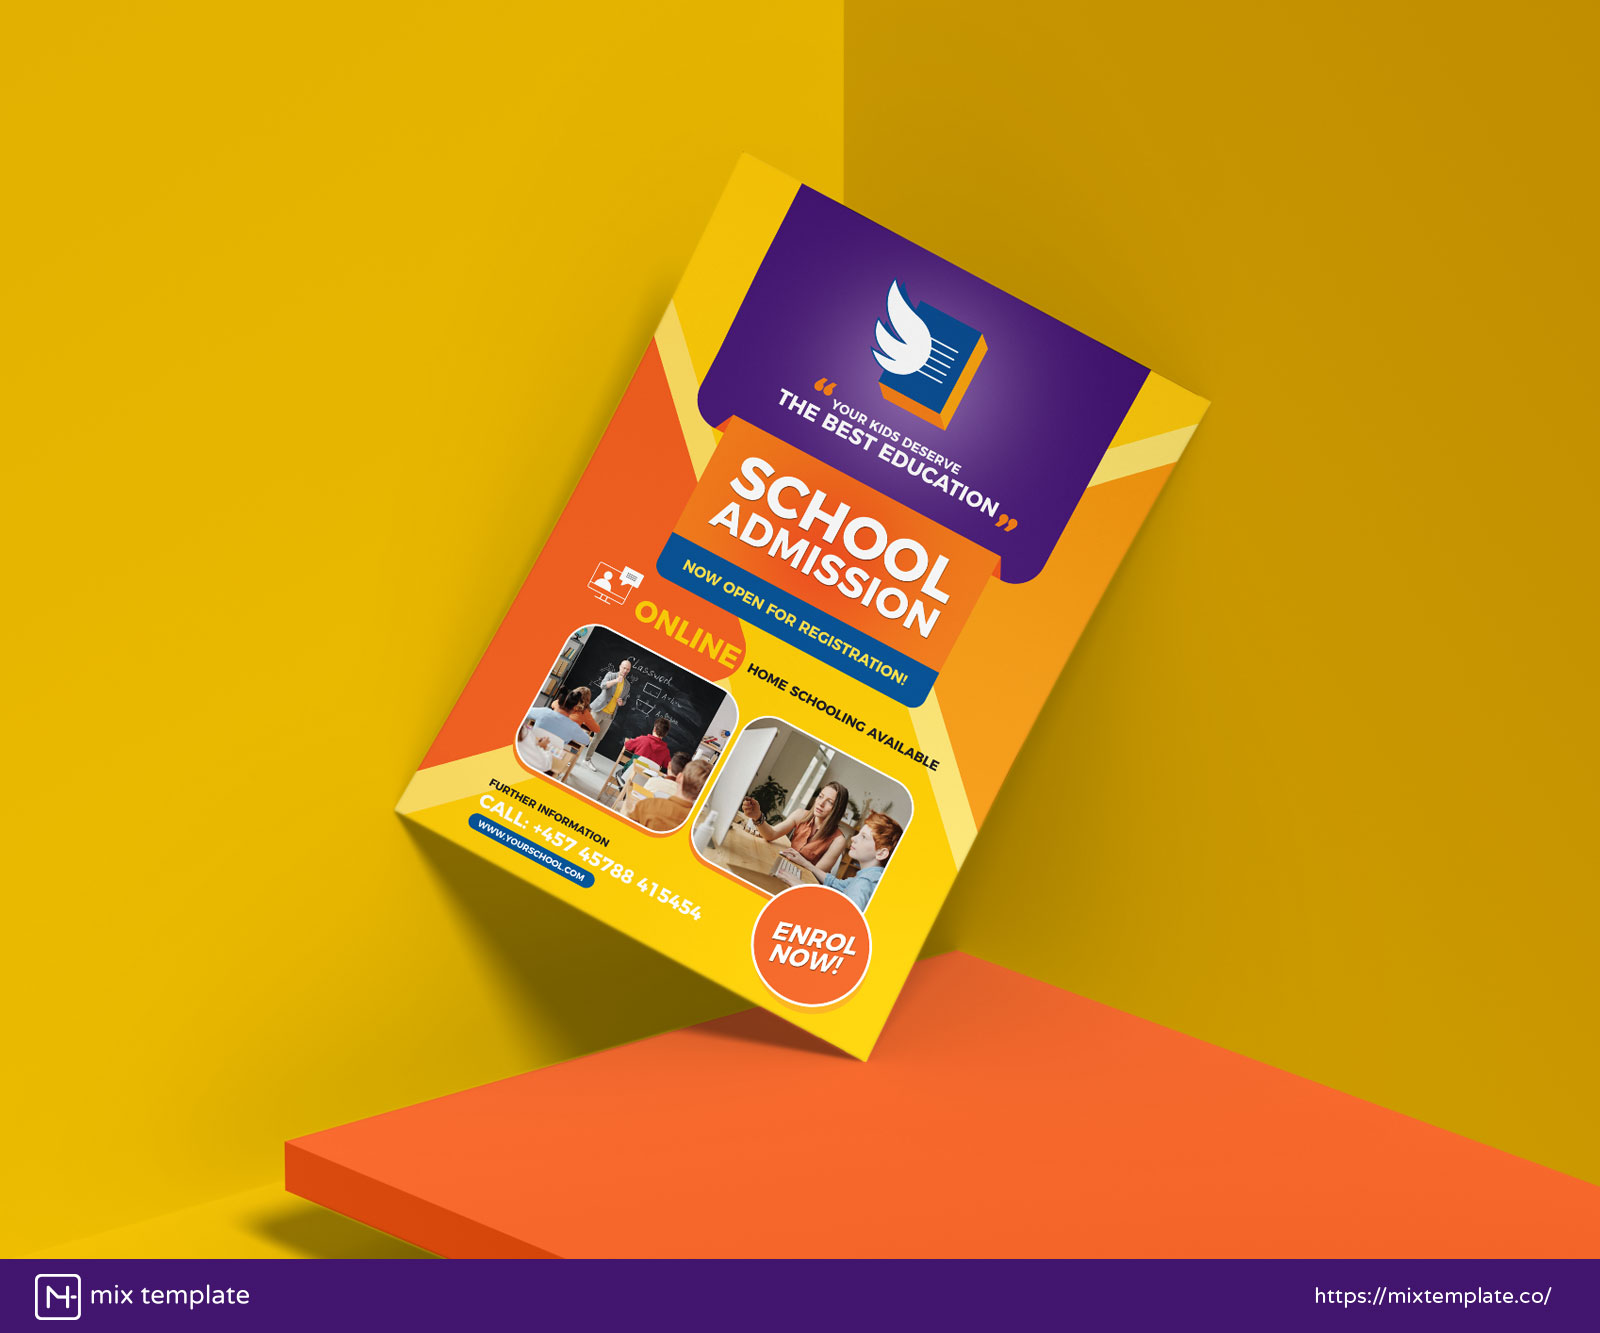 Free-Education-Flyer-Design-Template